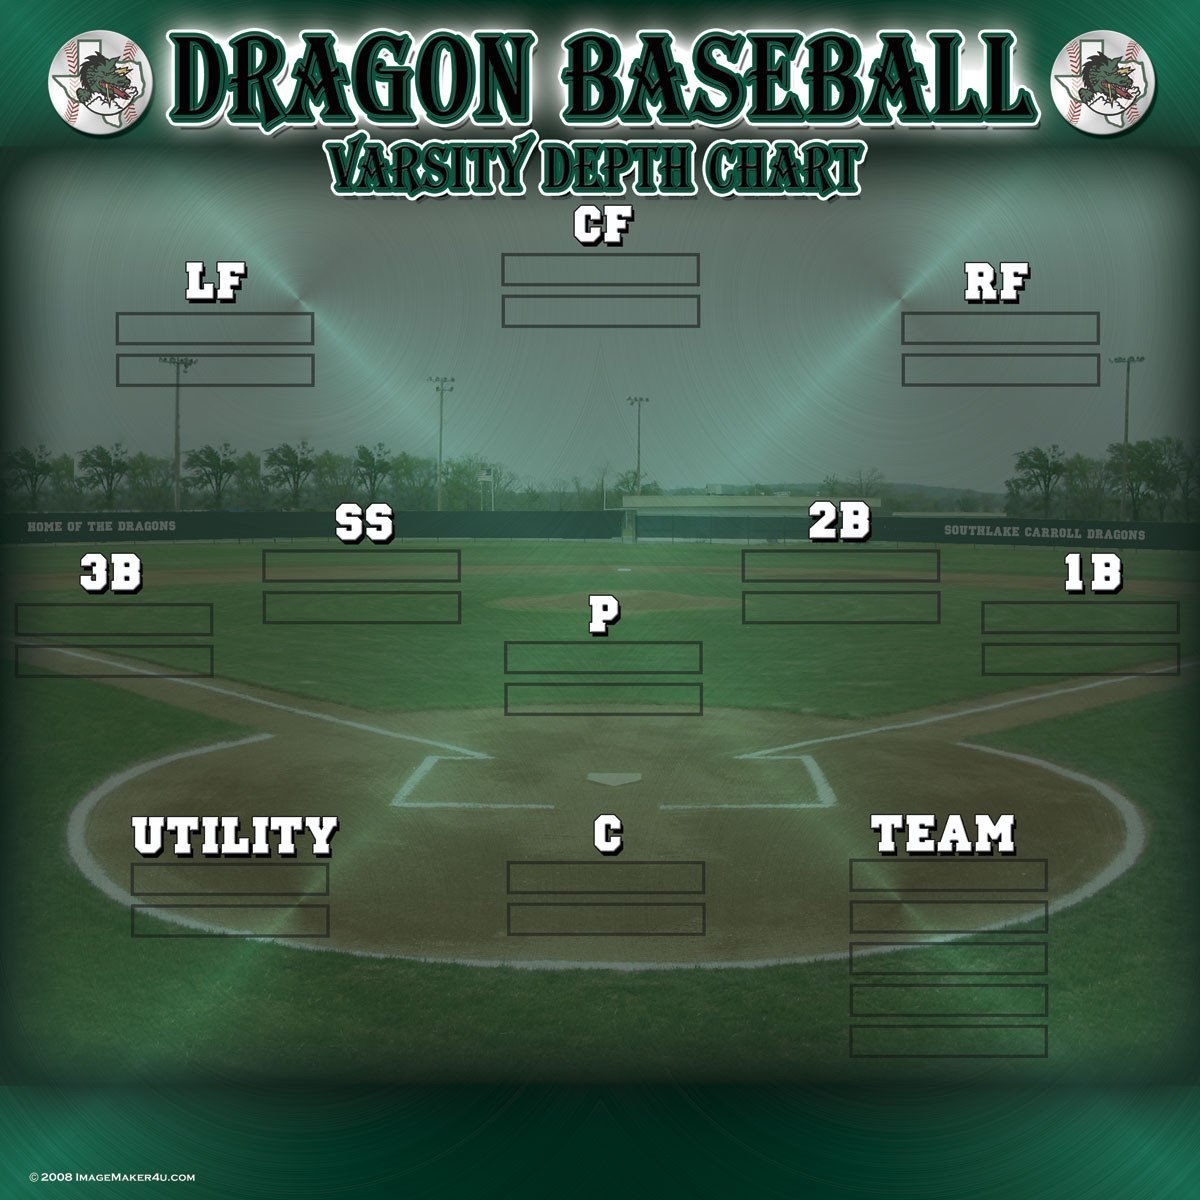 Softball Depth Chart Baseball & softball Image Maker